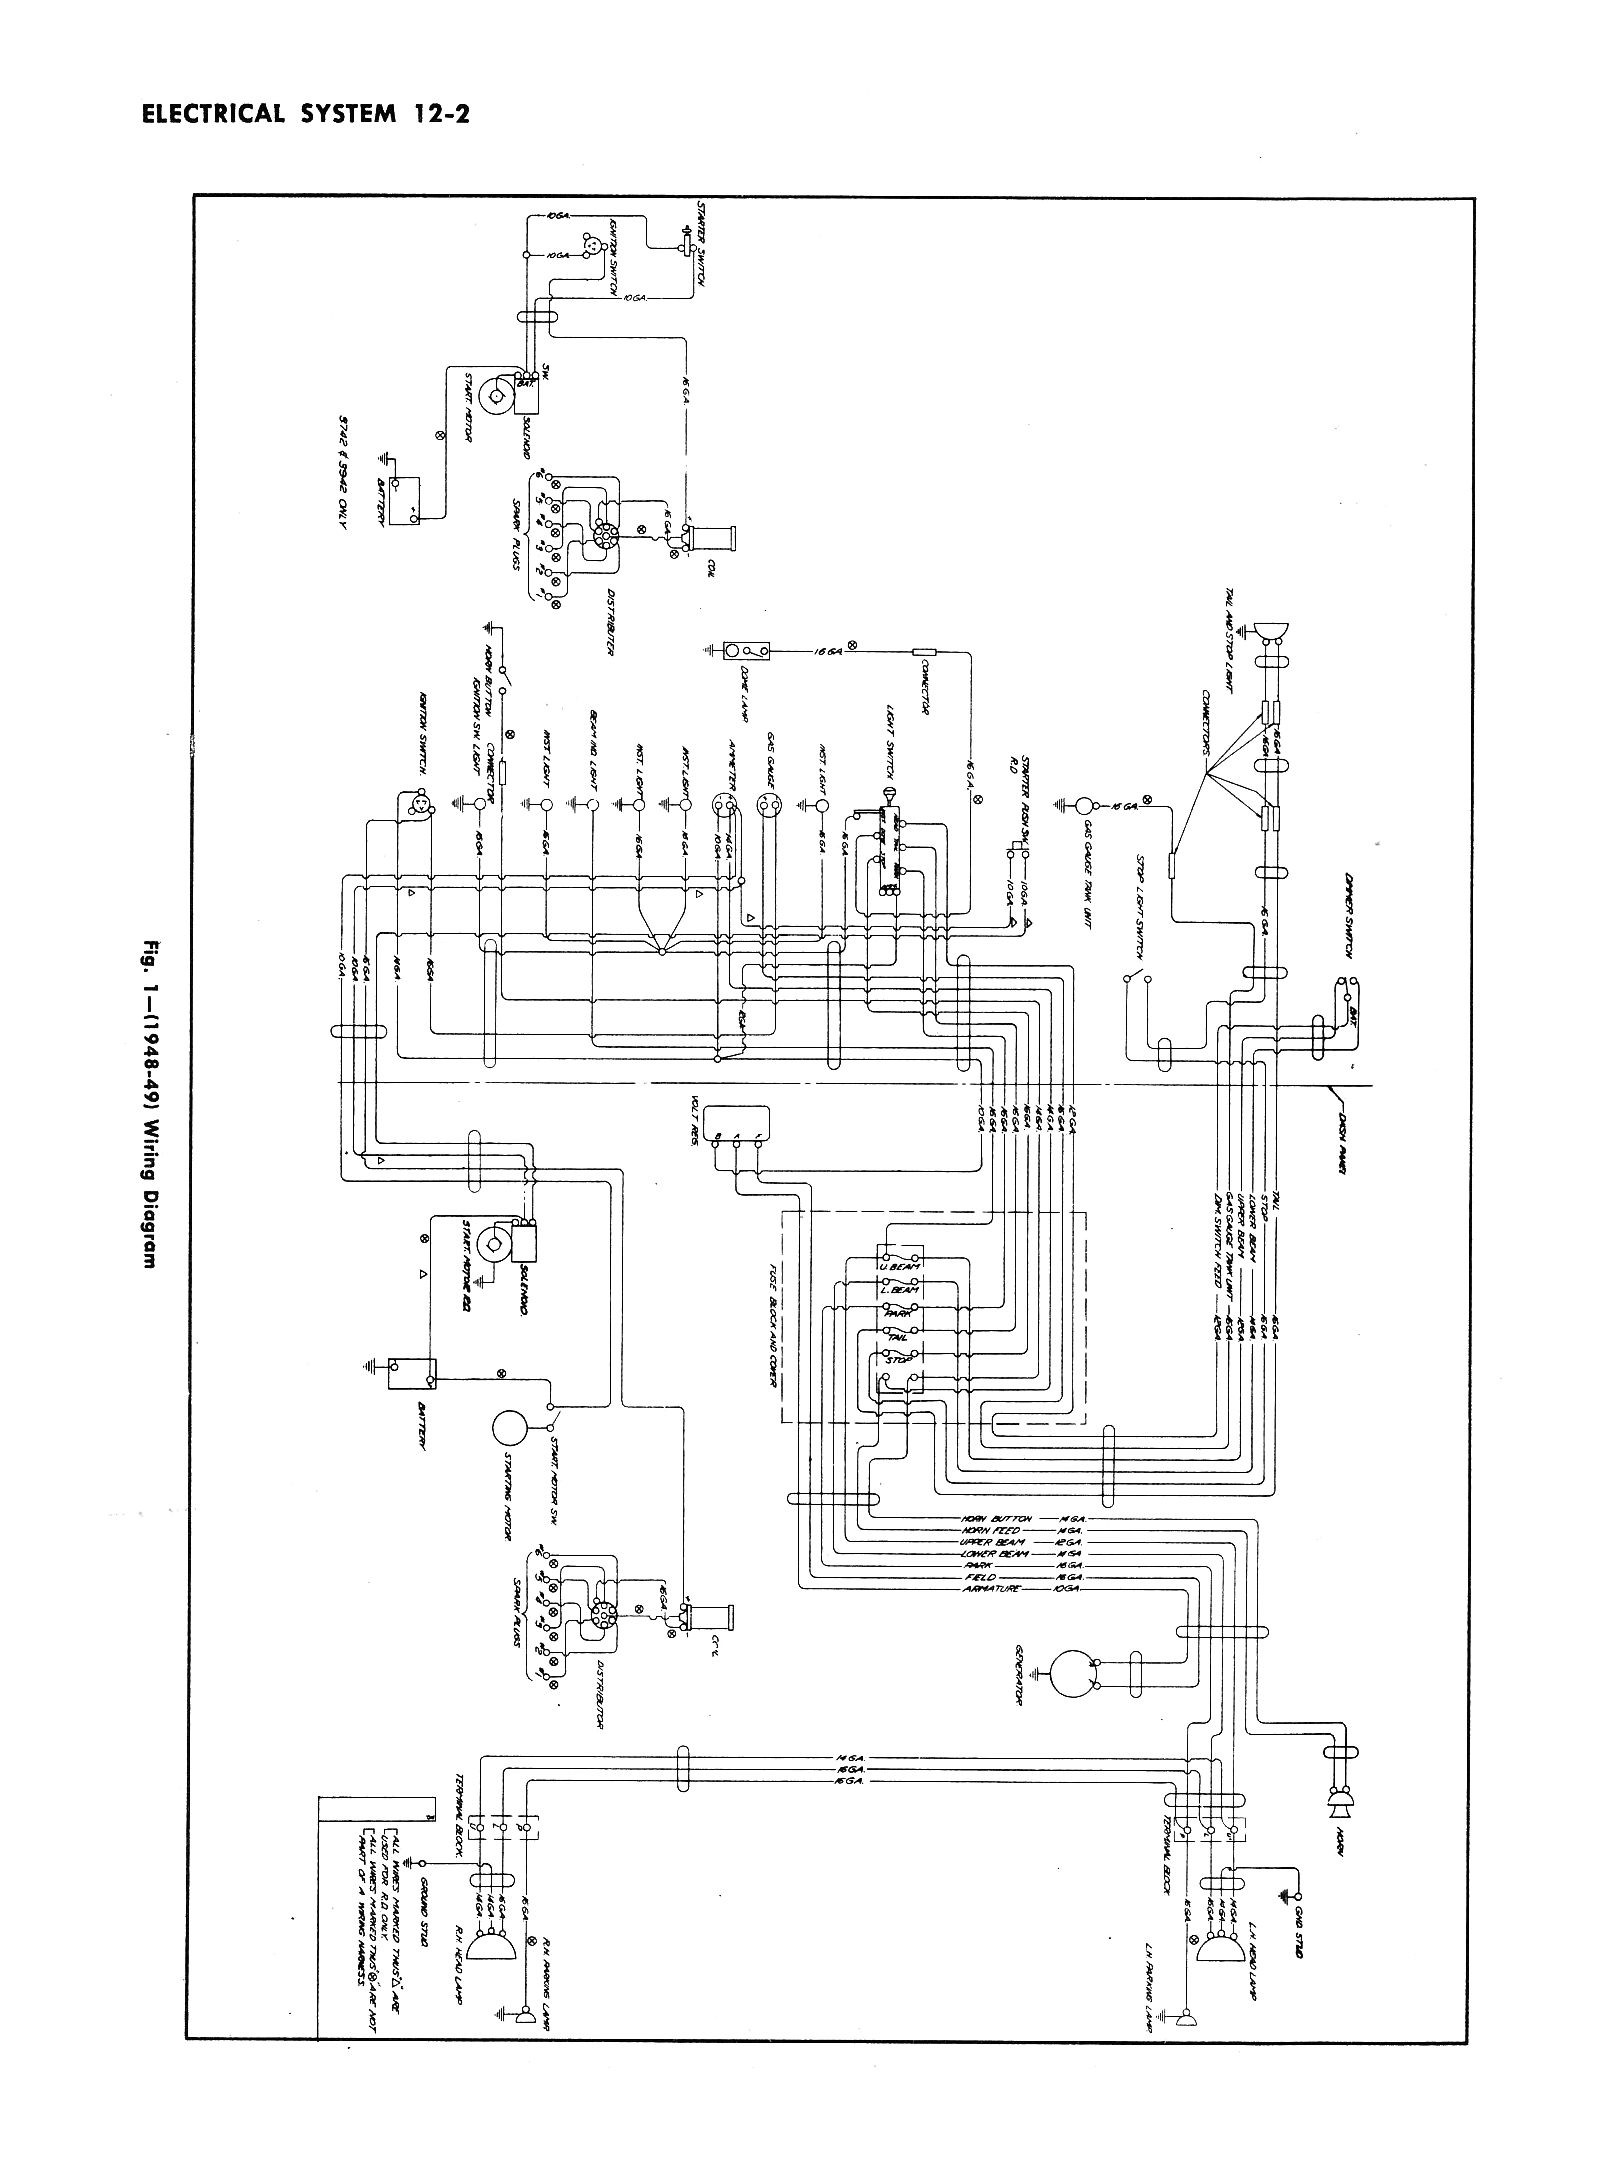 2006 S430 Headlight Wiring Diagram